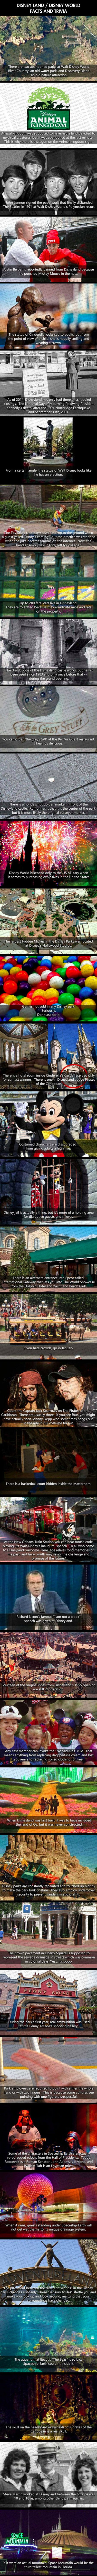 Here are some fun and geeky things you may not have known about Disney parks  is part of Disney world facts -